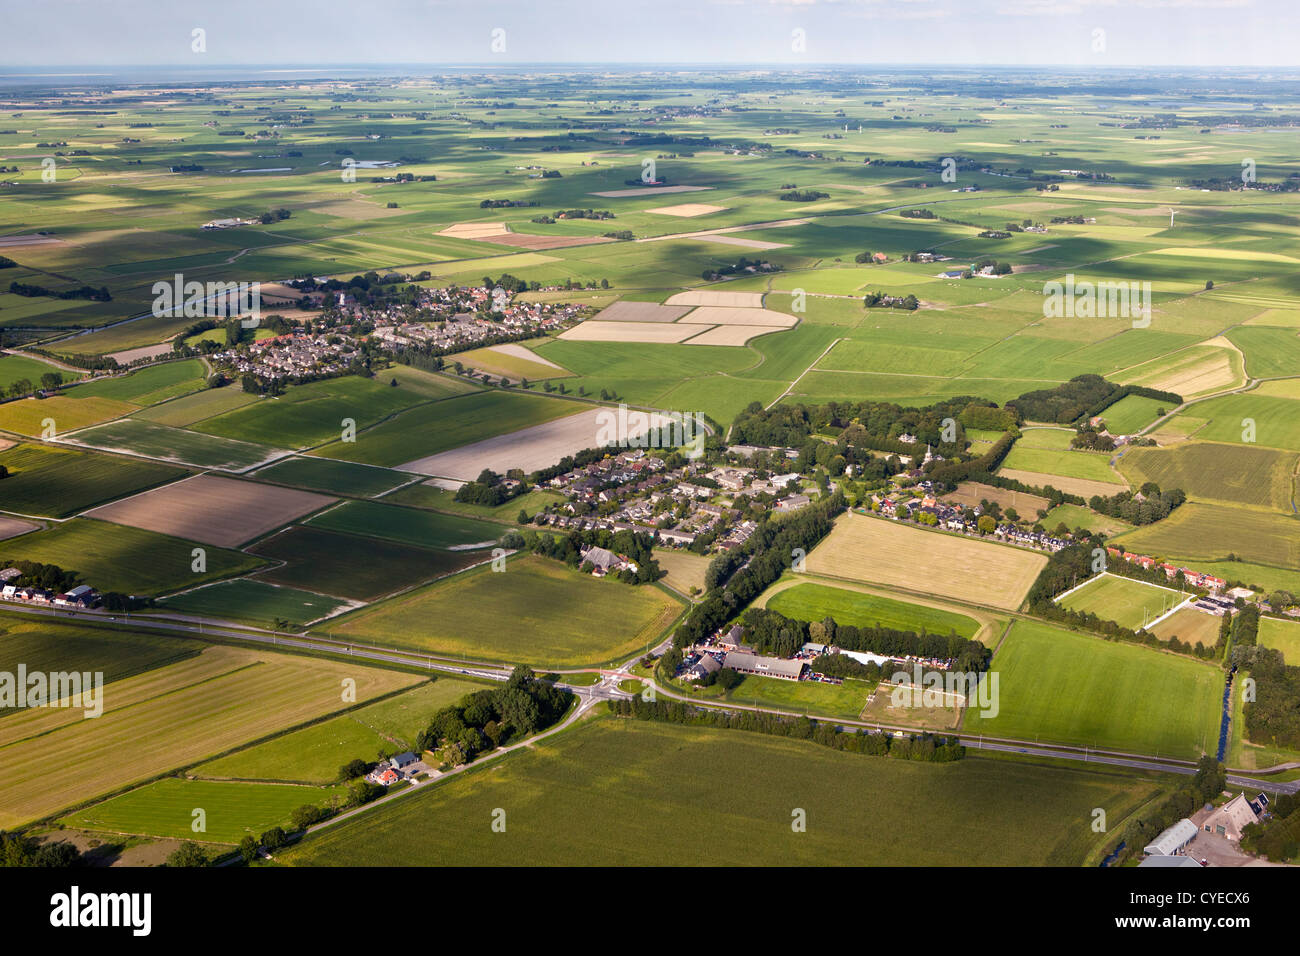 The Netherlands, near Stiens, Villages and farmland. Aerial. - Stock Image